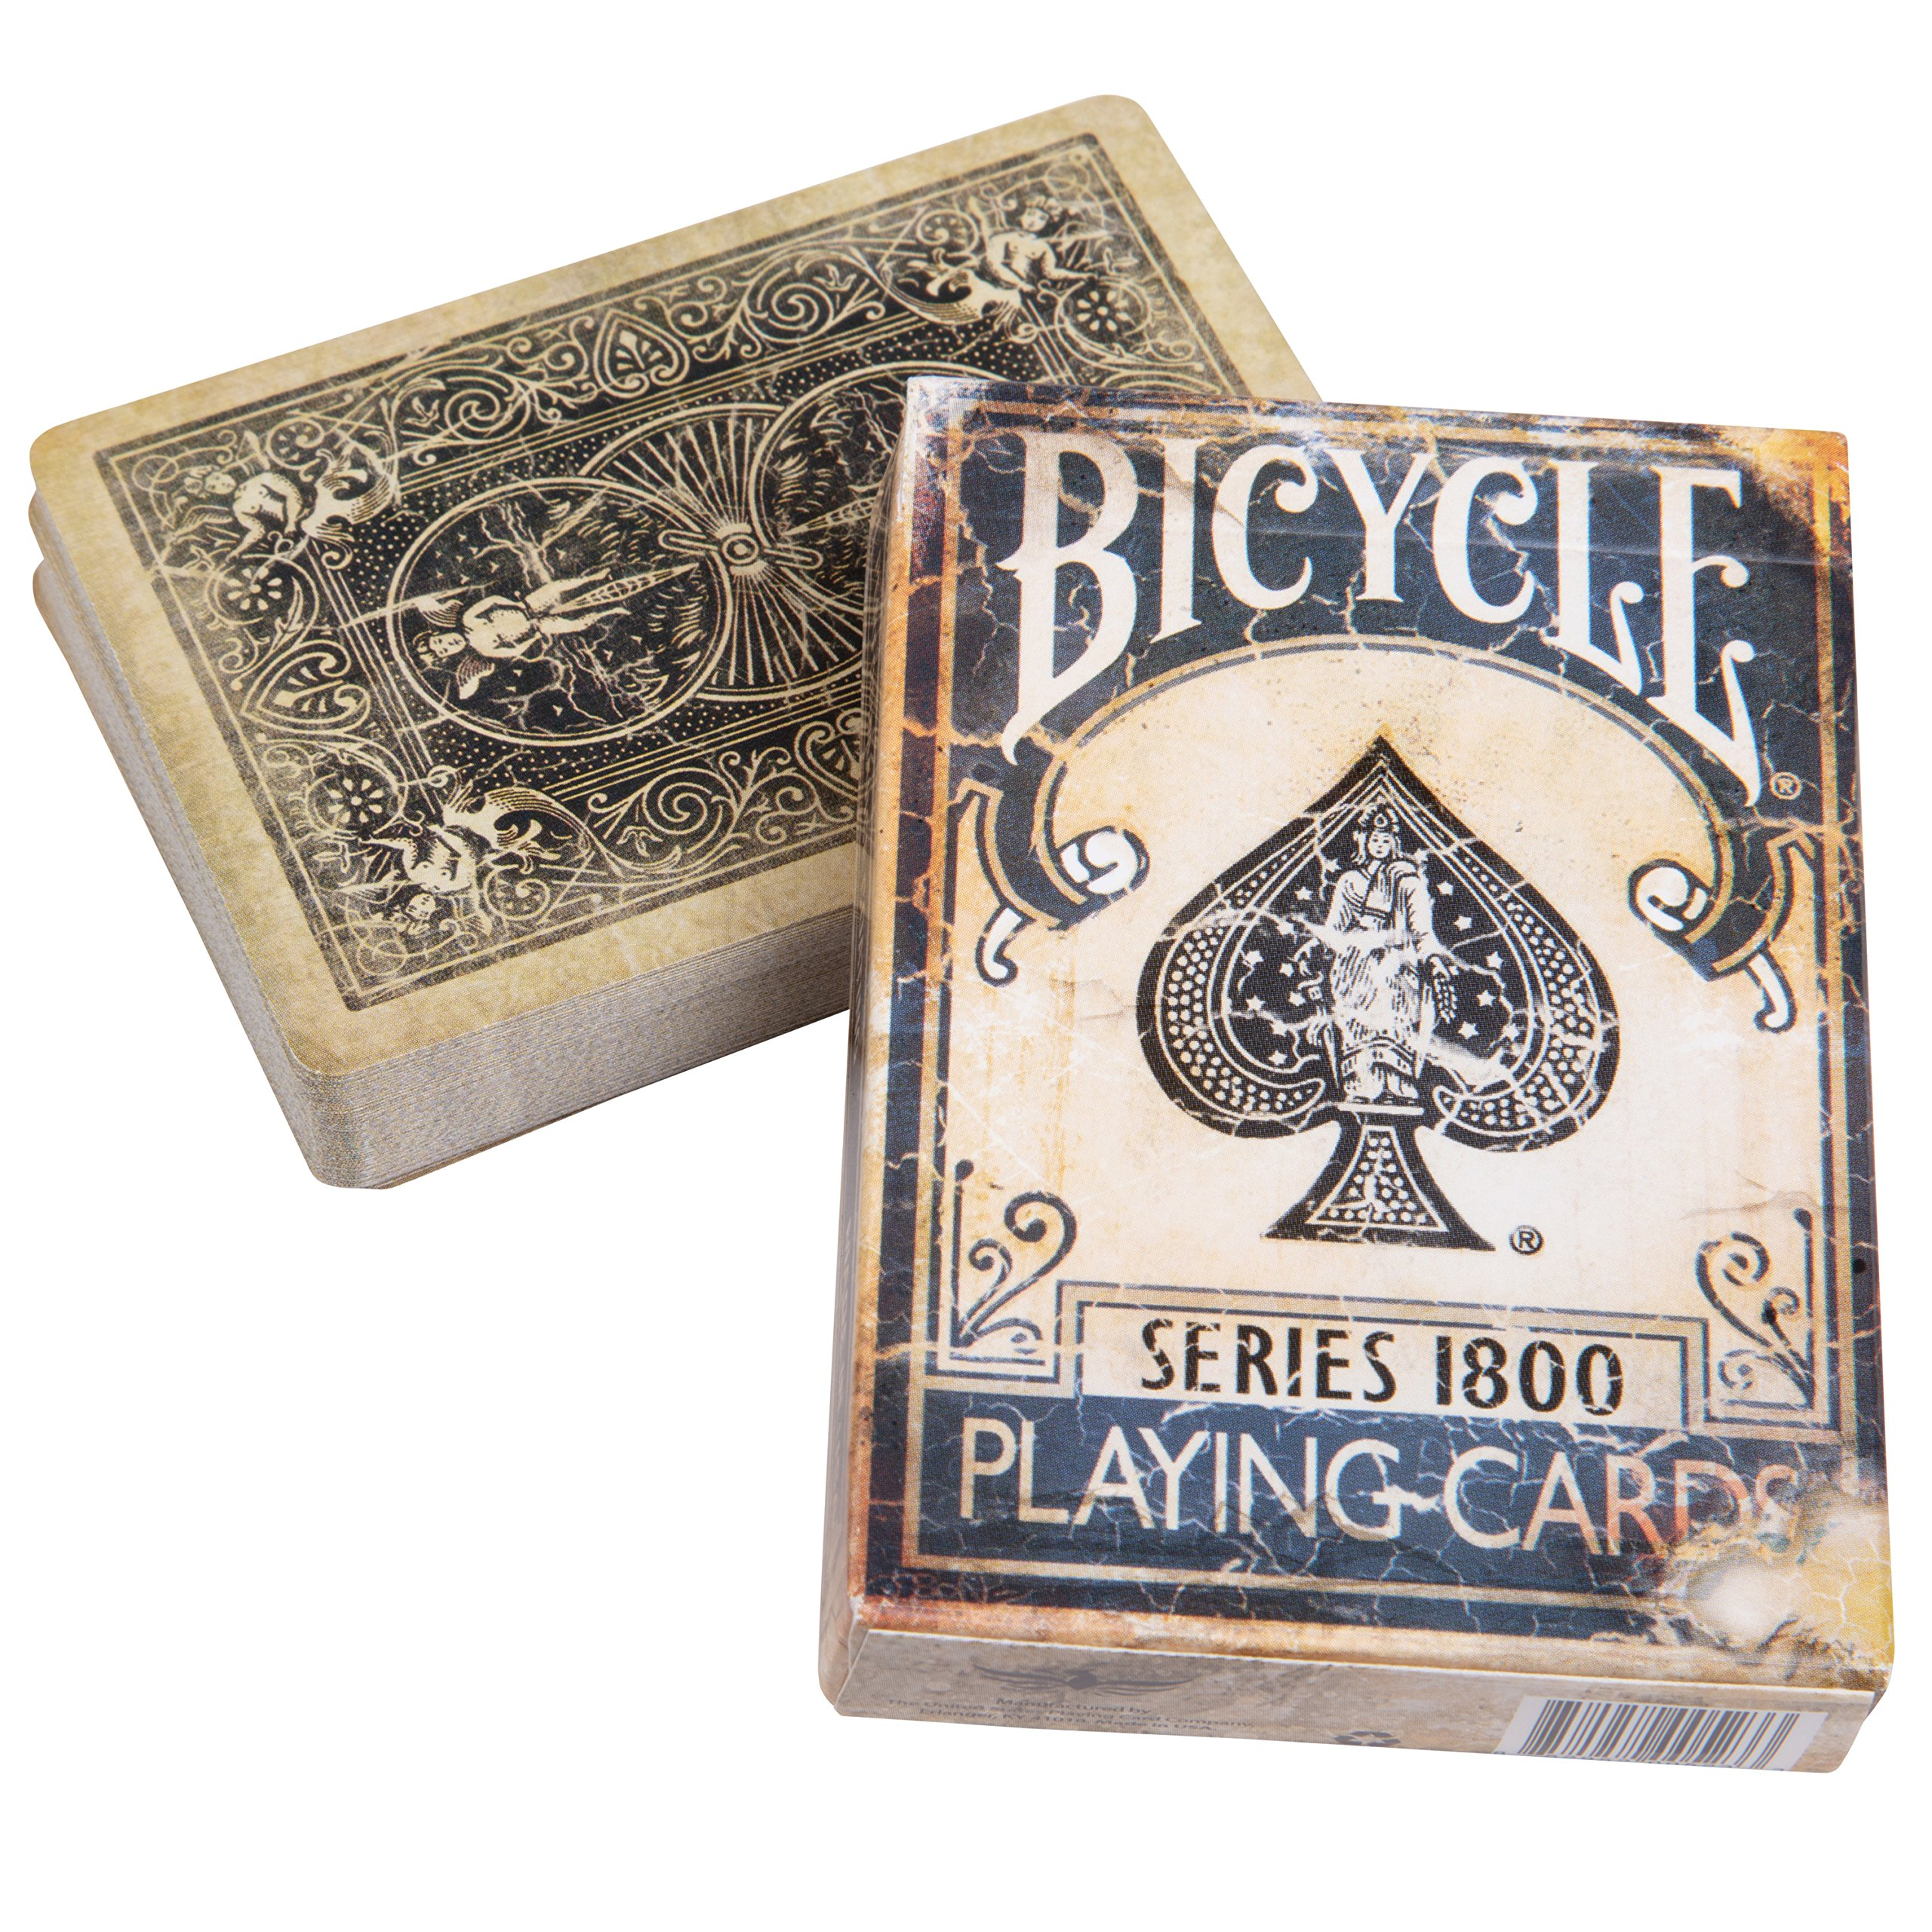 Bicycle 1800 Vintage Playing Cards by Ellusionist - Blue